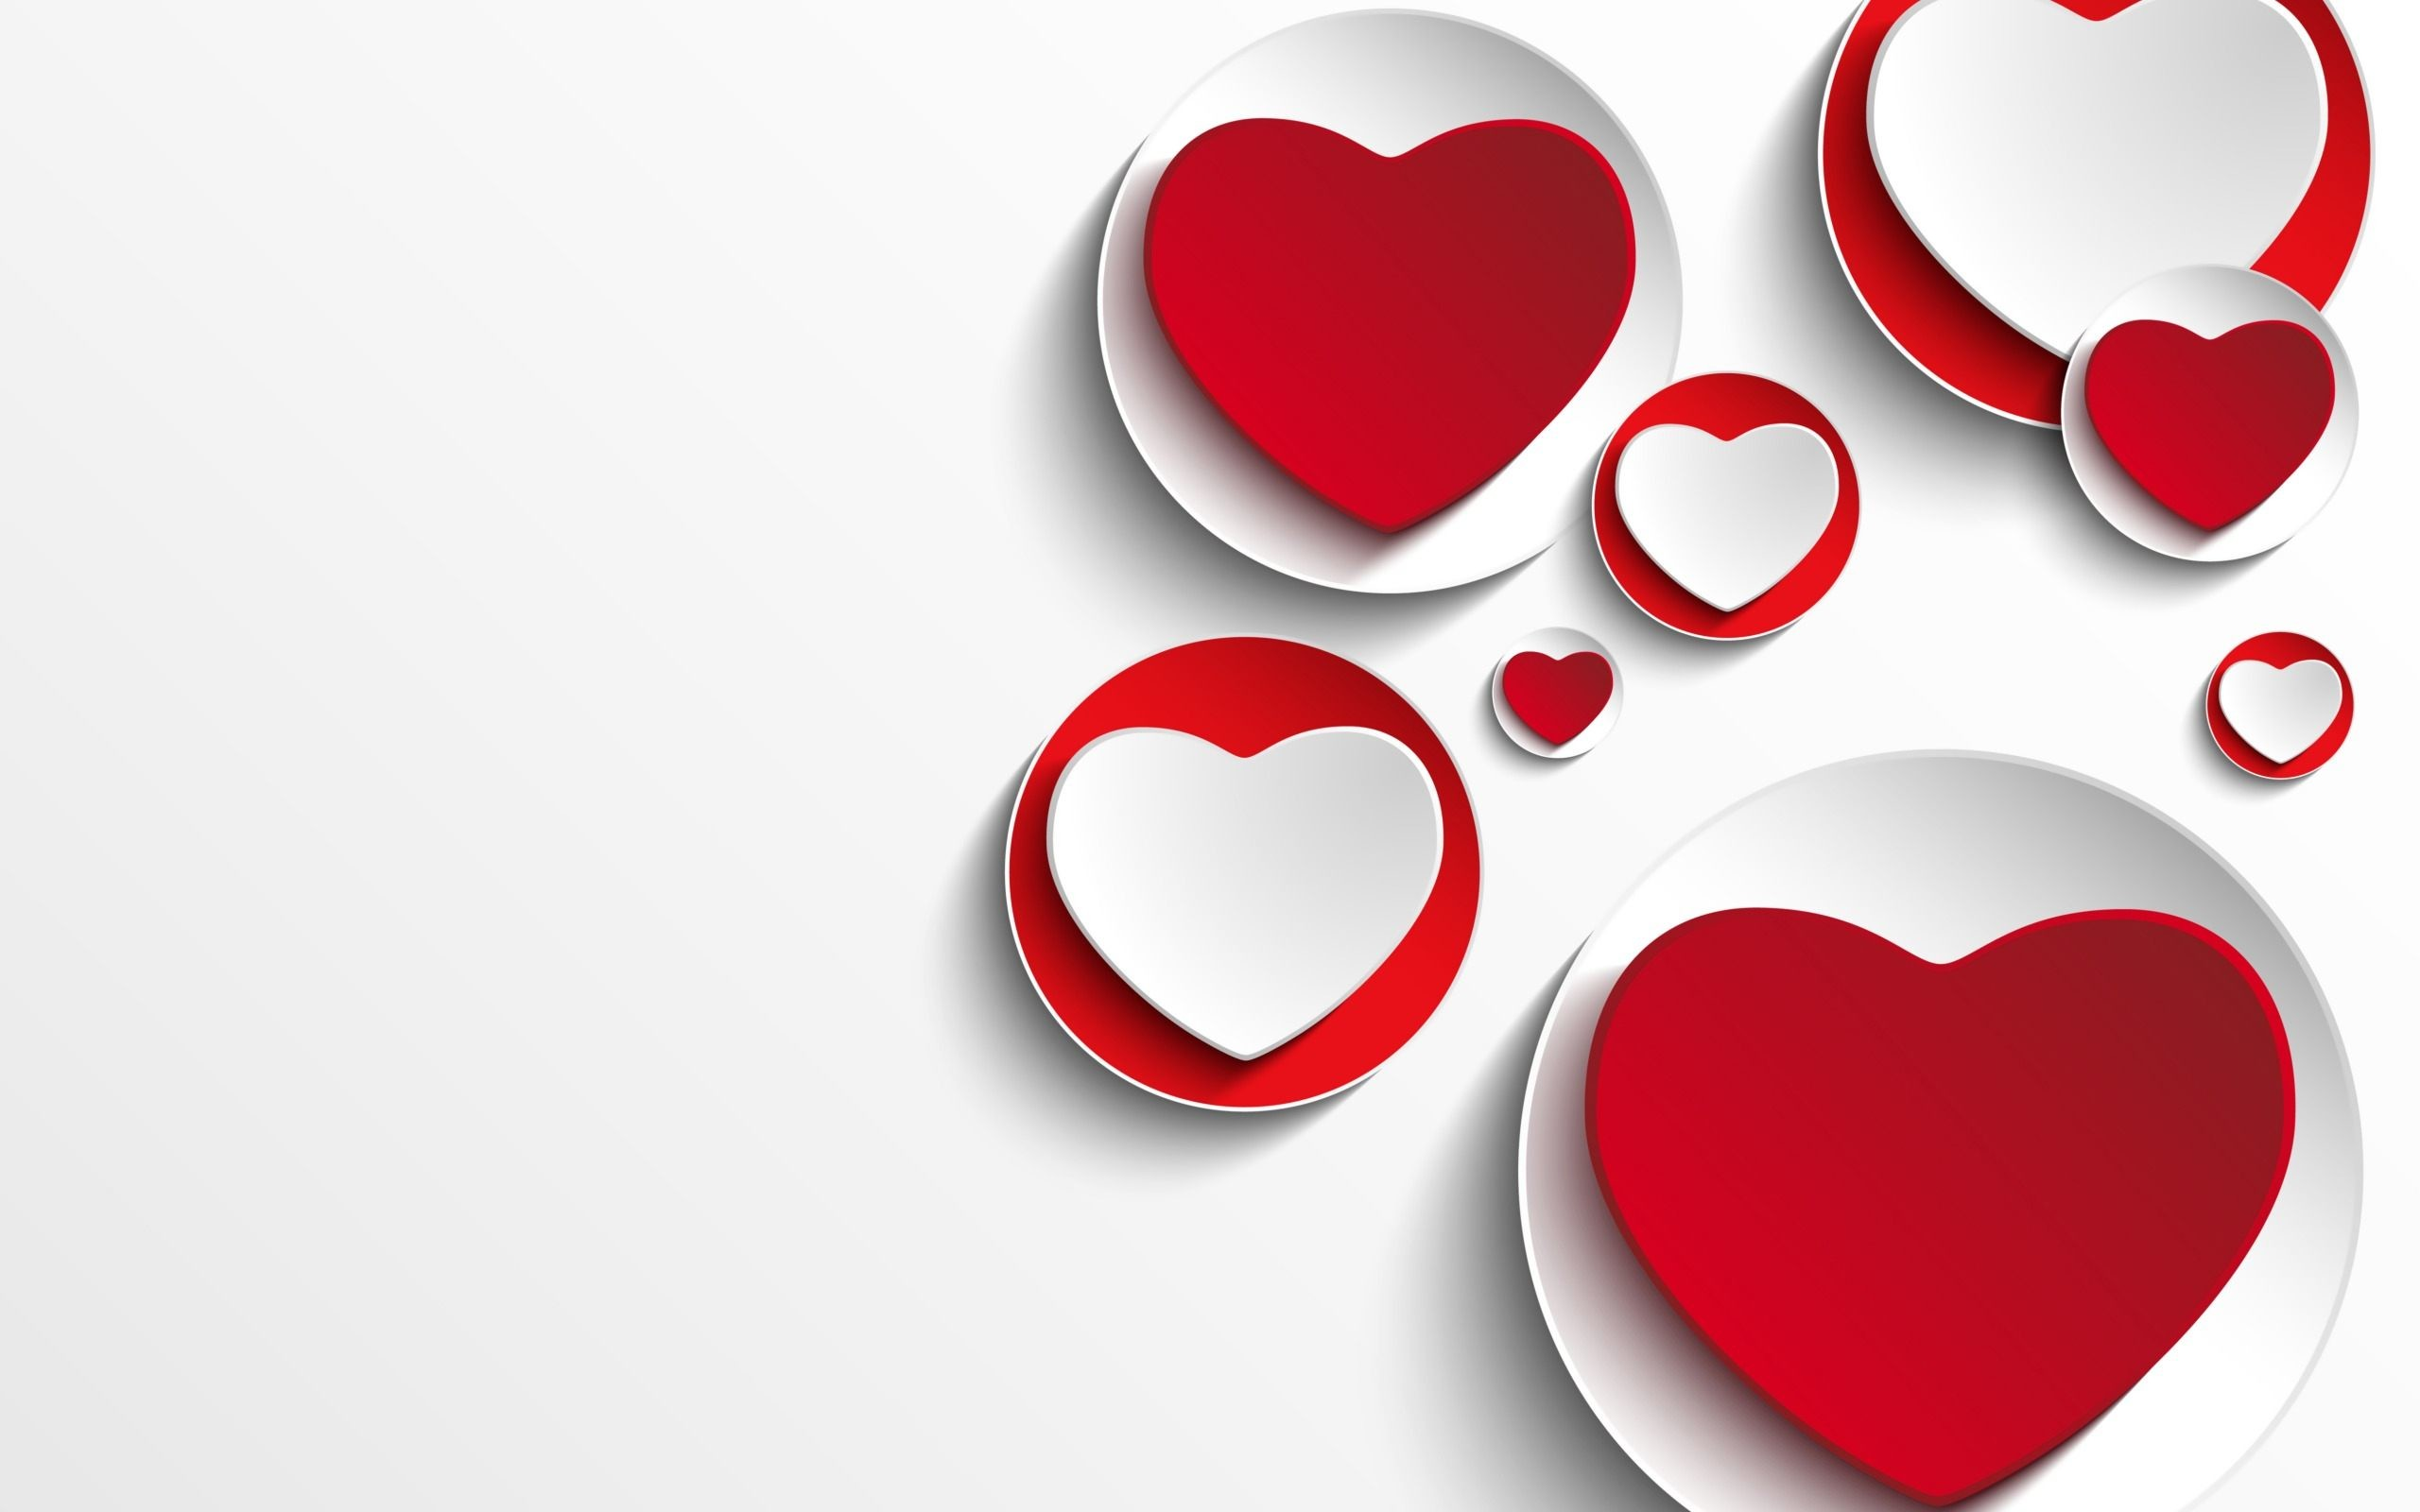 Love Wallpapers 2560x1600 : Love Wallpapers Backgrounds (54+ images)